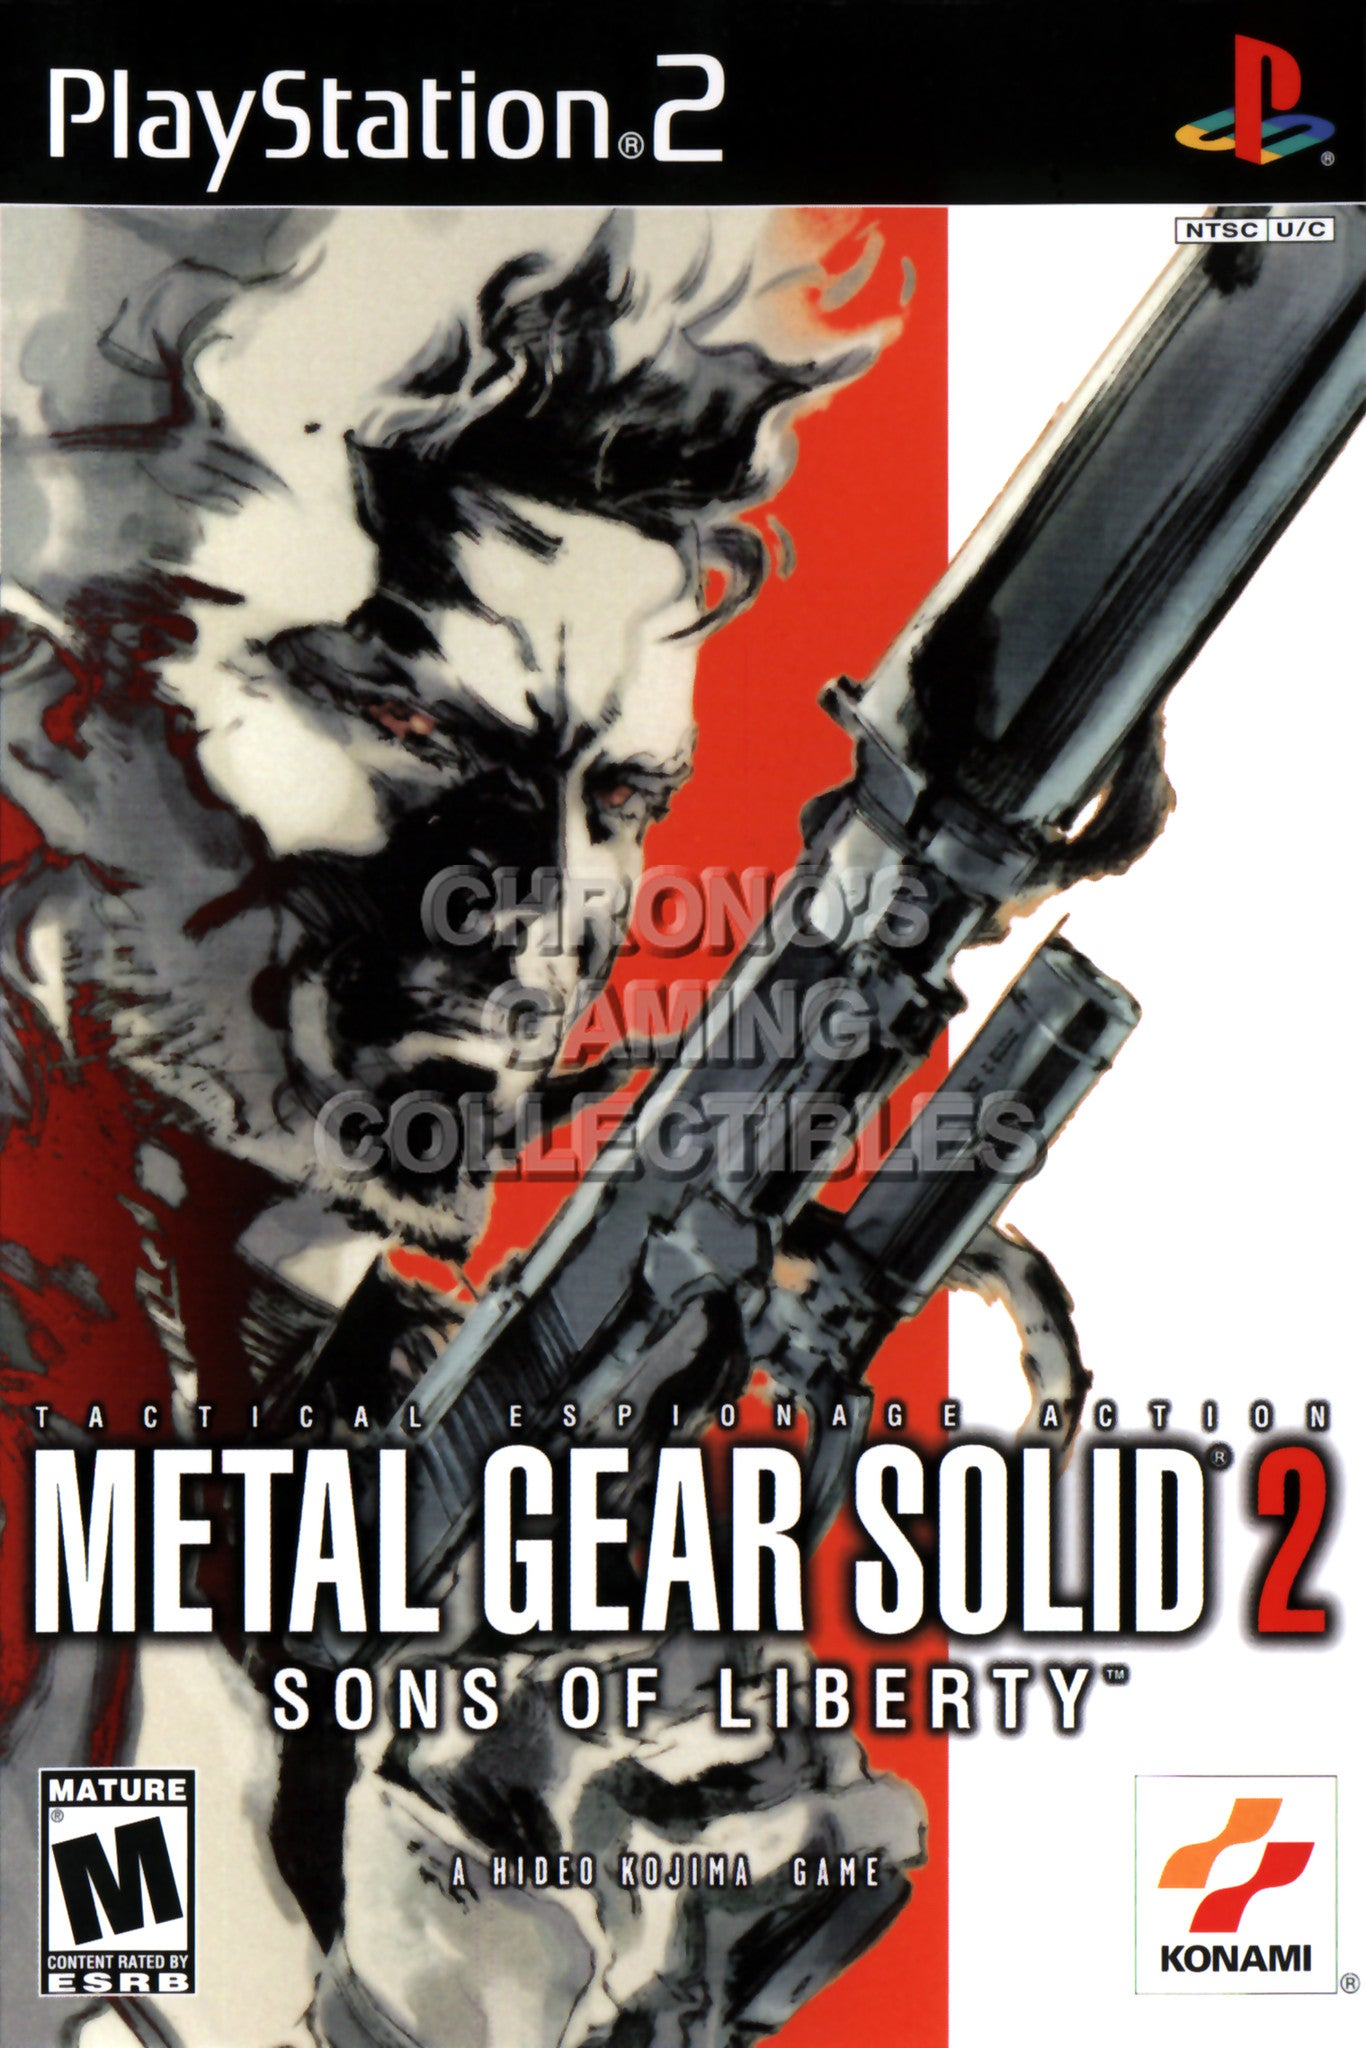 CGC Huge Poster - Metal Gear Solid 2 Sons of Liberty - BOX ART Sony  Plastation 2 PS2 - PS2199